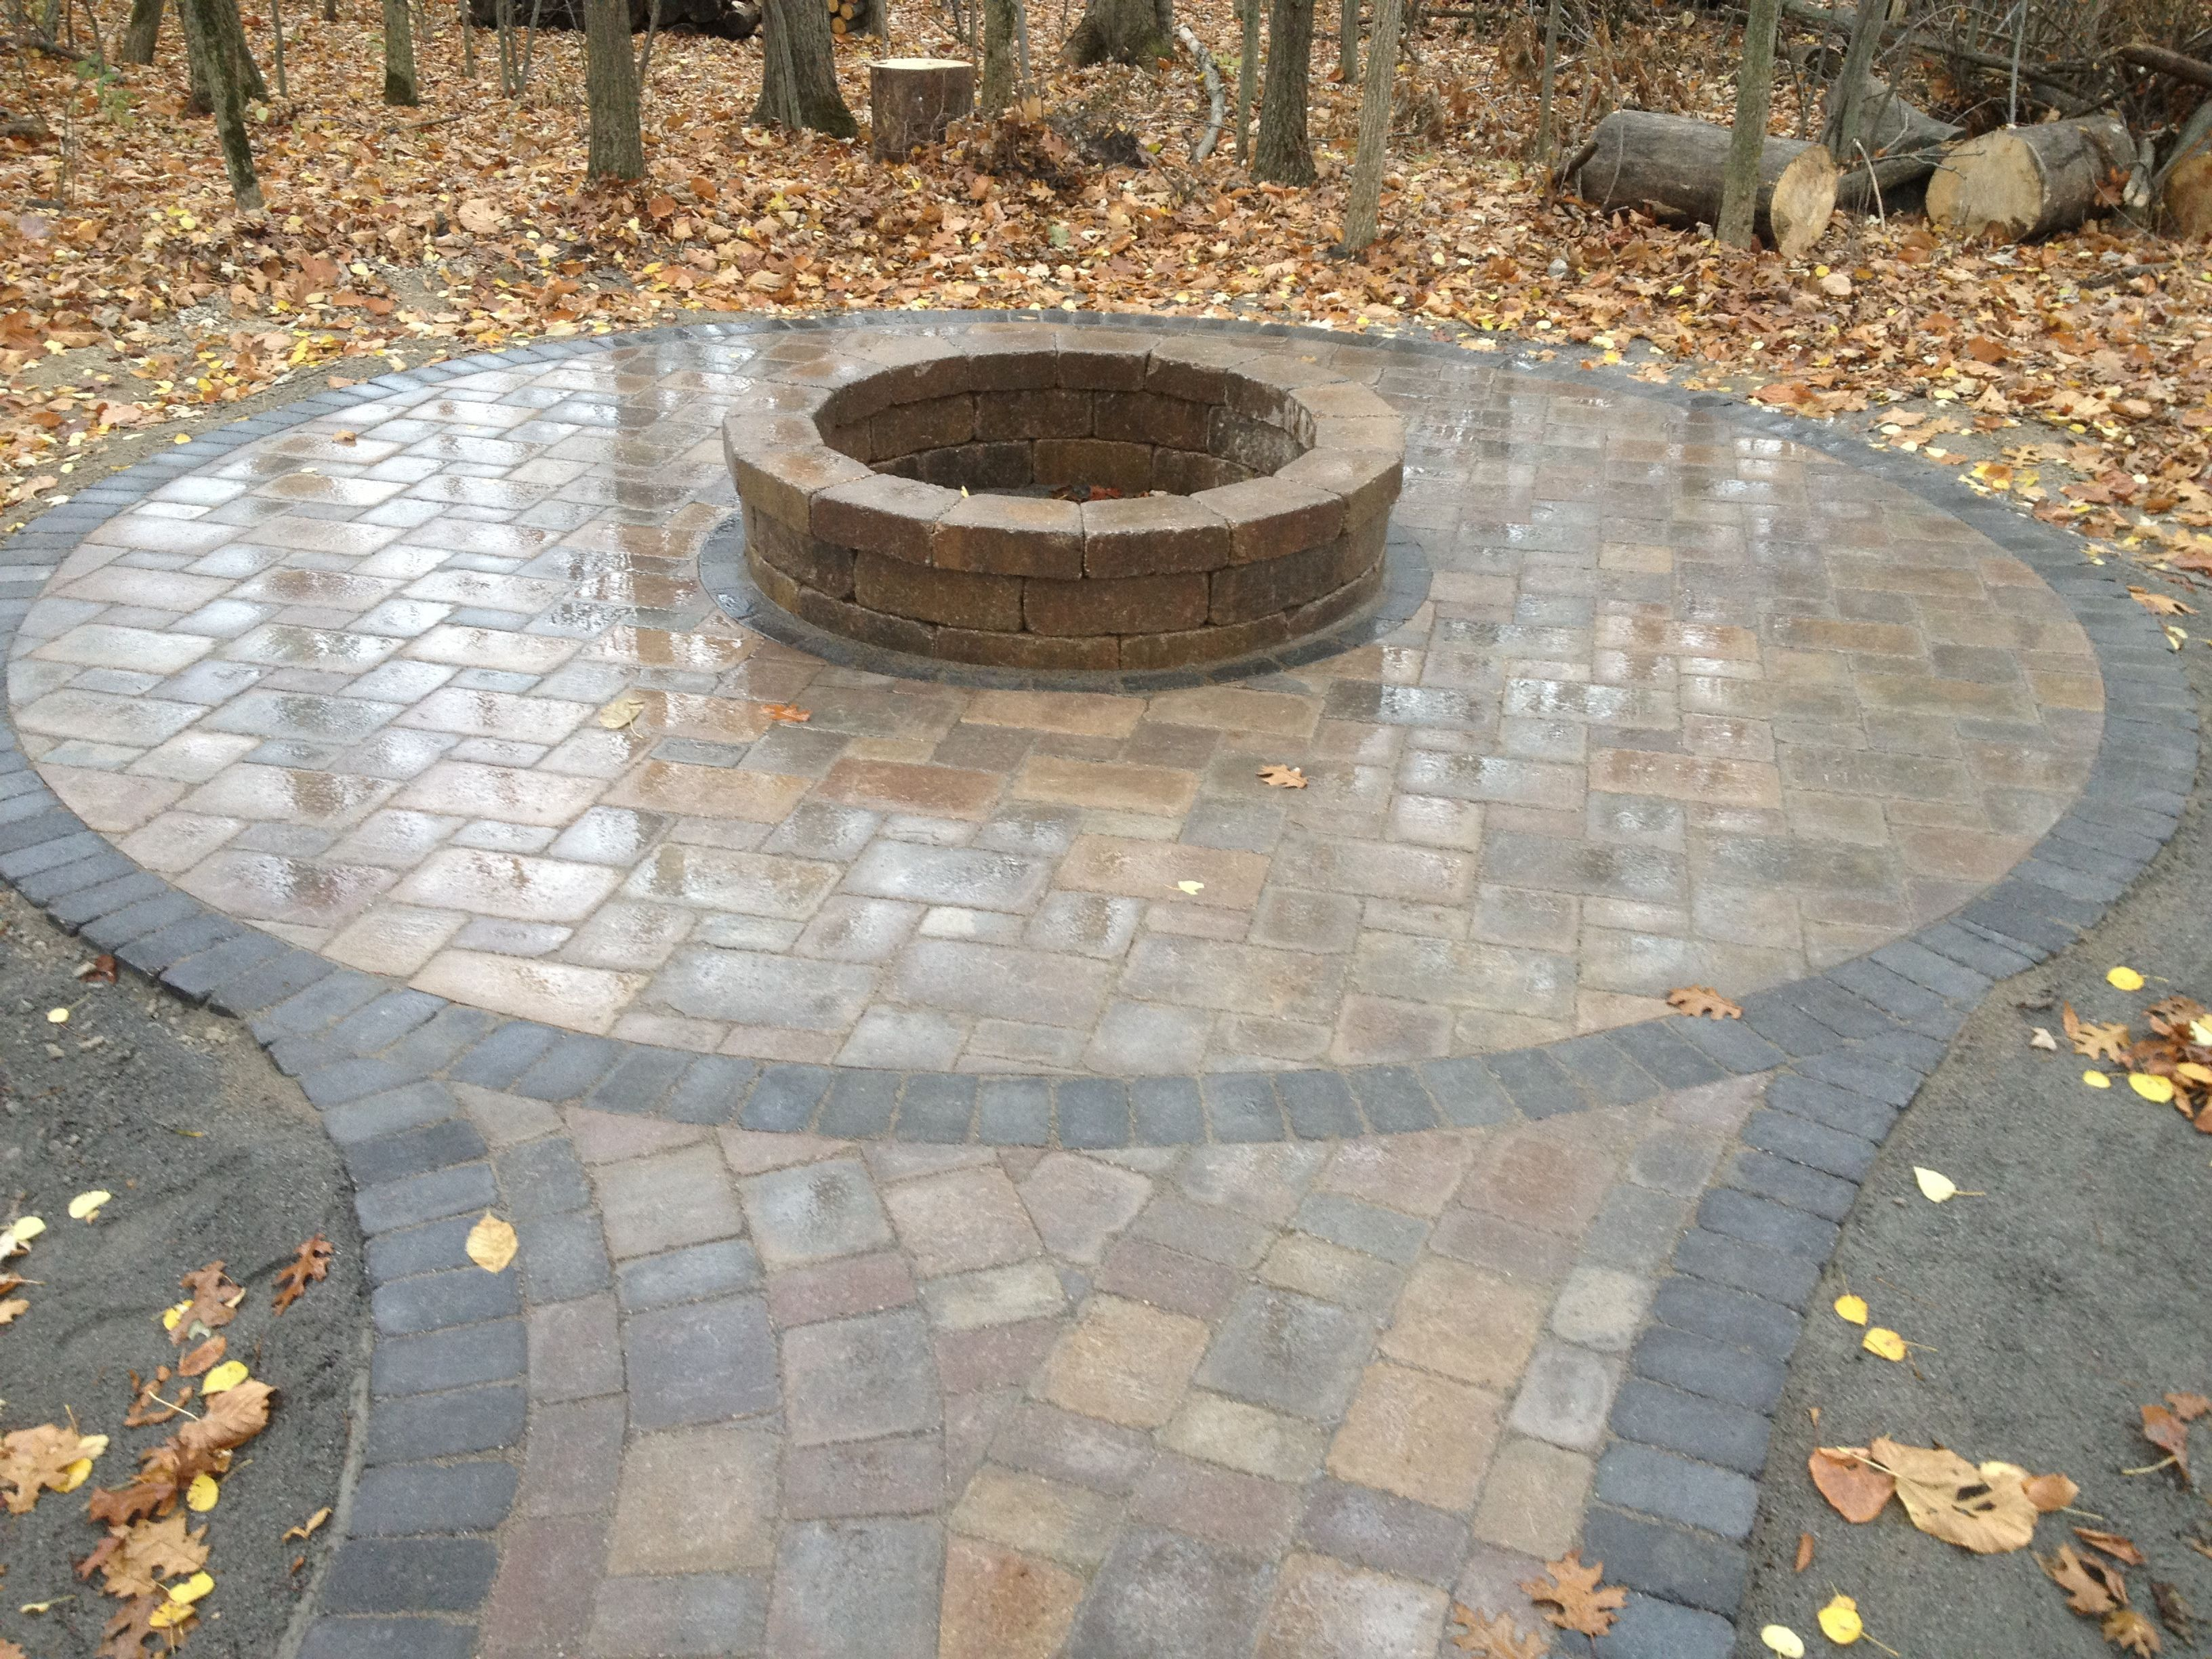 Fire Pit In The Woods Brick Paver Patio And Tumbled Paver Stone Fire Pit All Natural Landscapes Fire Pit Patio Fire Pit Landscaping Patio Stones